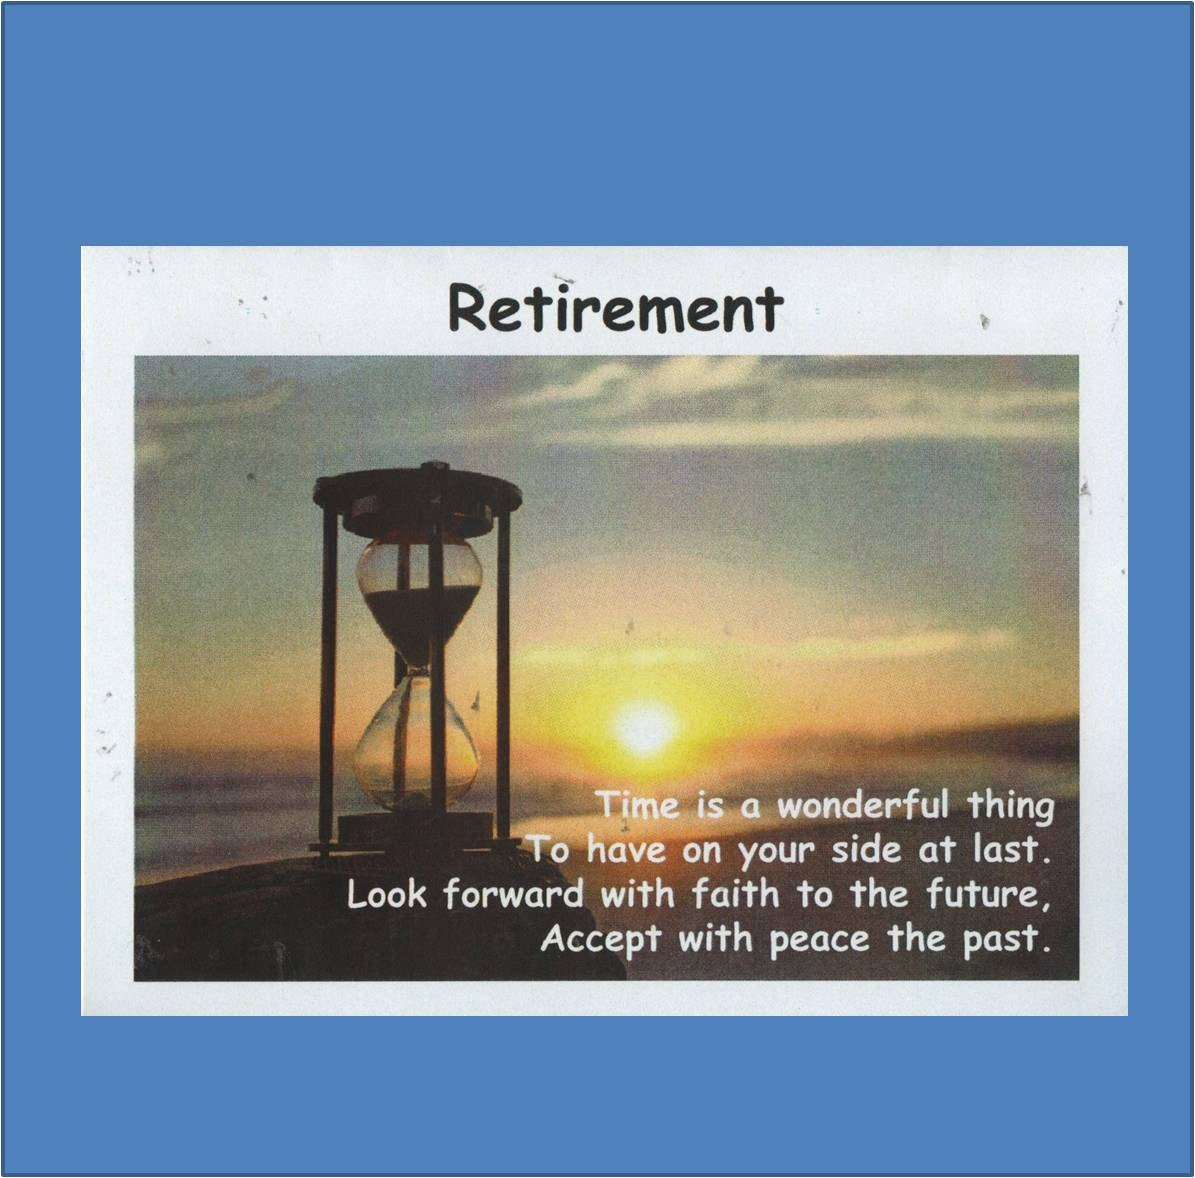 Quotes About Retirement And Time: Best Wishes Retirement Quotes. QuotesGram